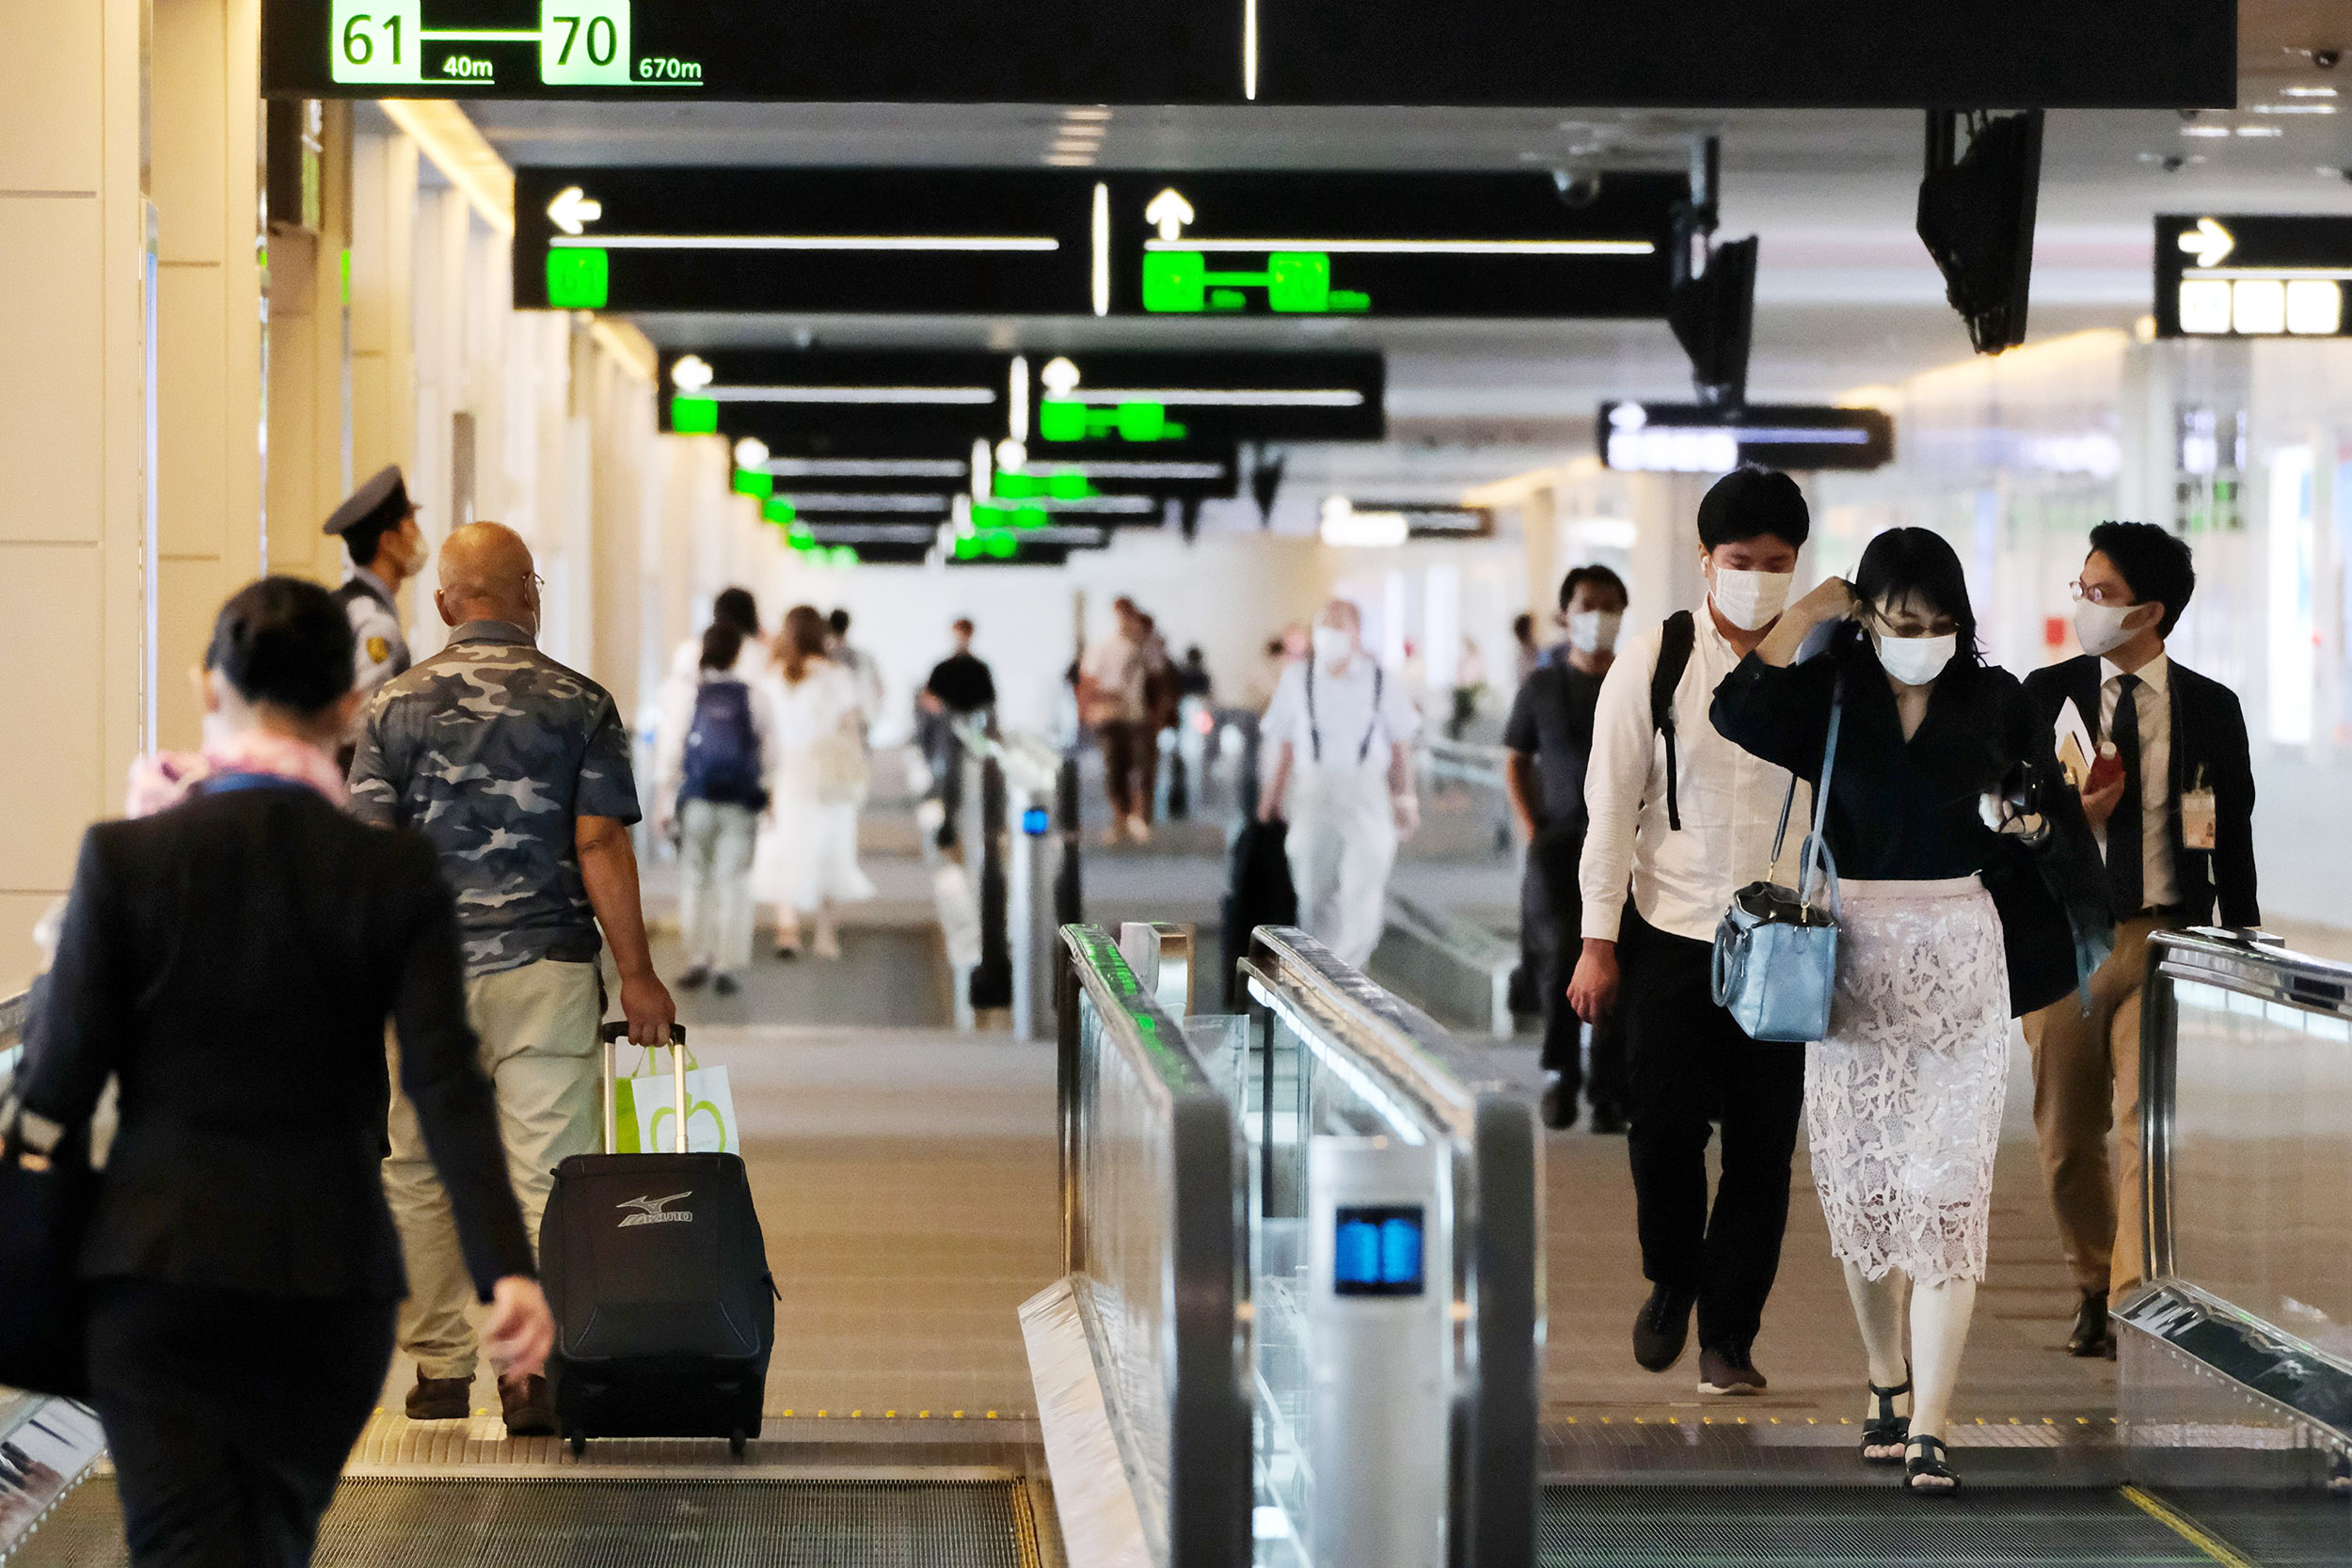 Passengers head to their departure gates at the domestic terminal of Tokyo's Haneda airport in Japan, on July 25.